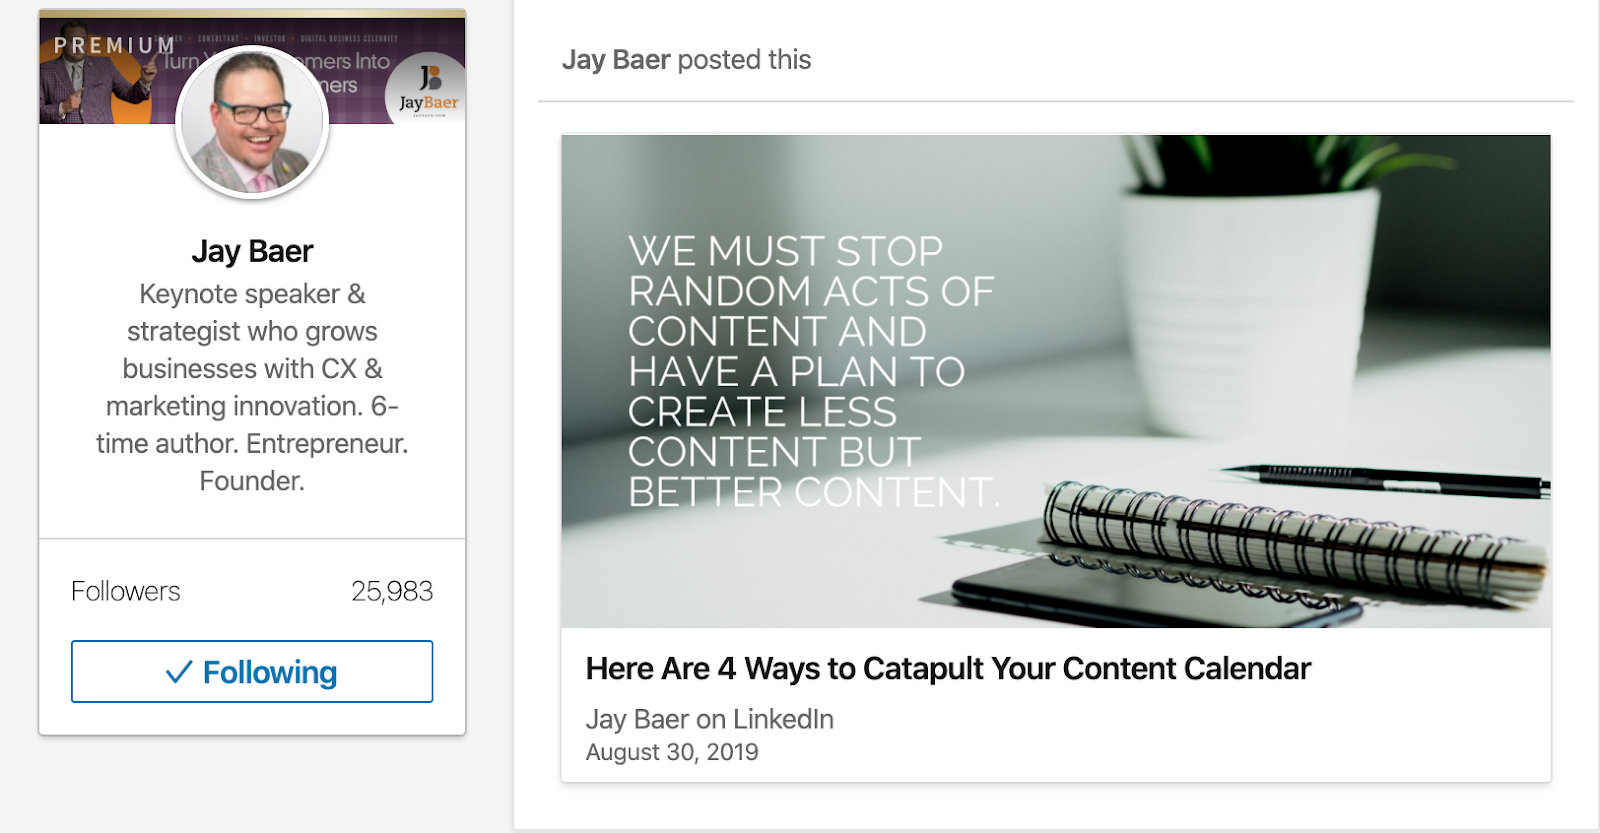 Jay Baer post on LinkedIn